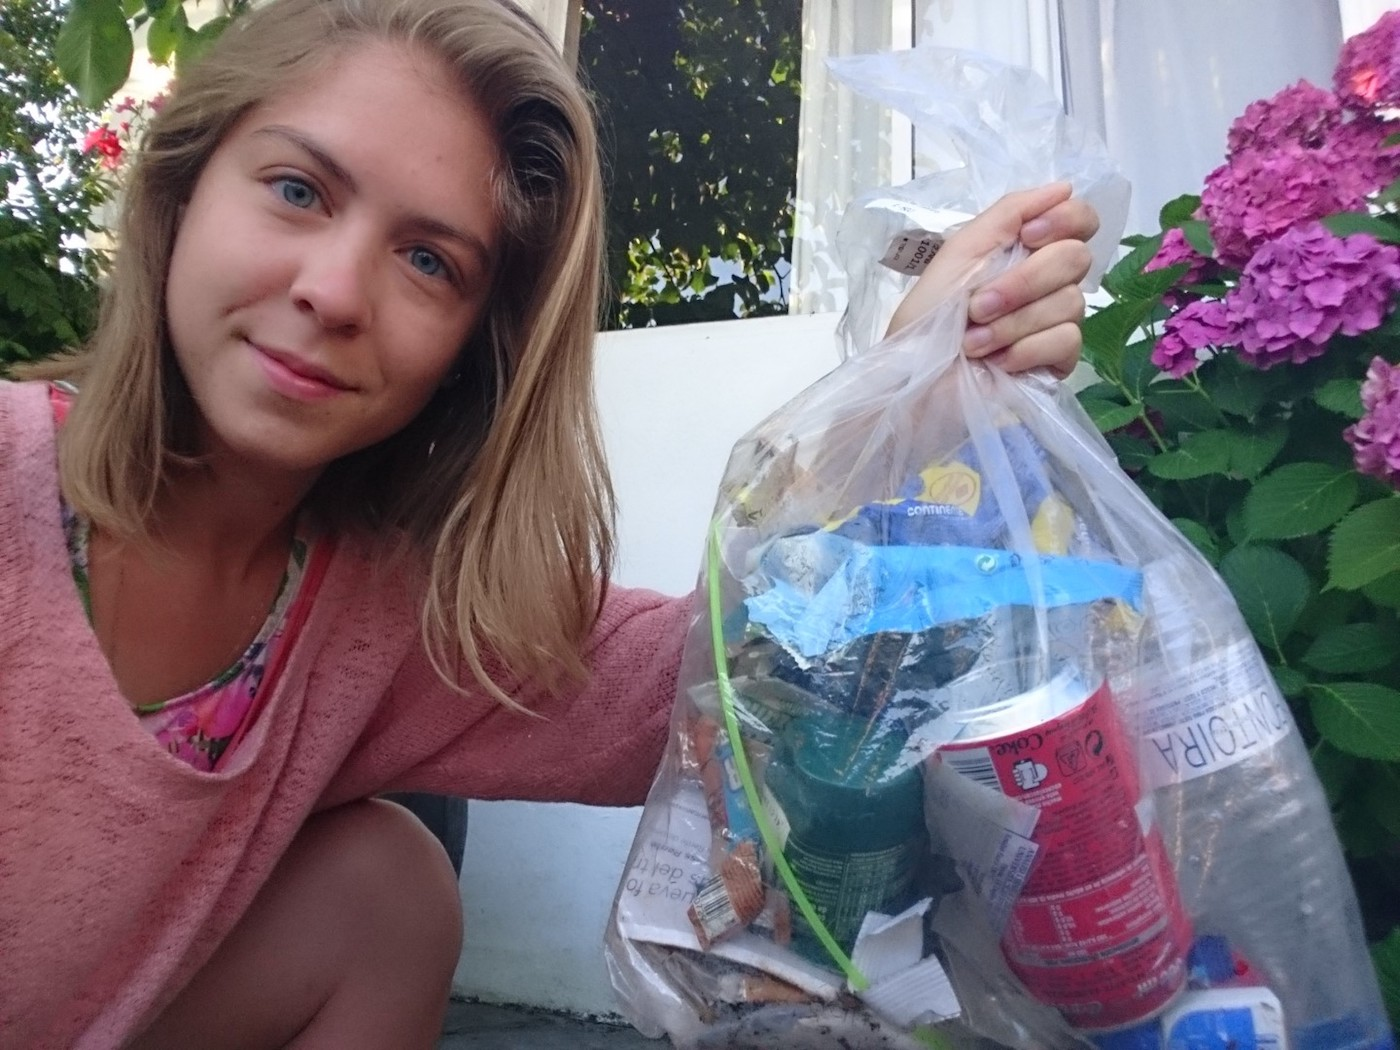 Emilia Cantero started living green, and began picking up street trash to try to help nature and wildlife